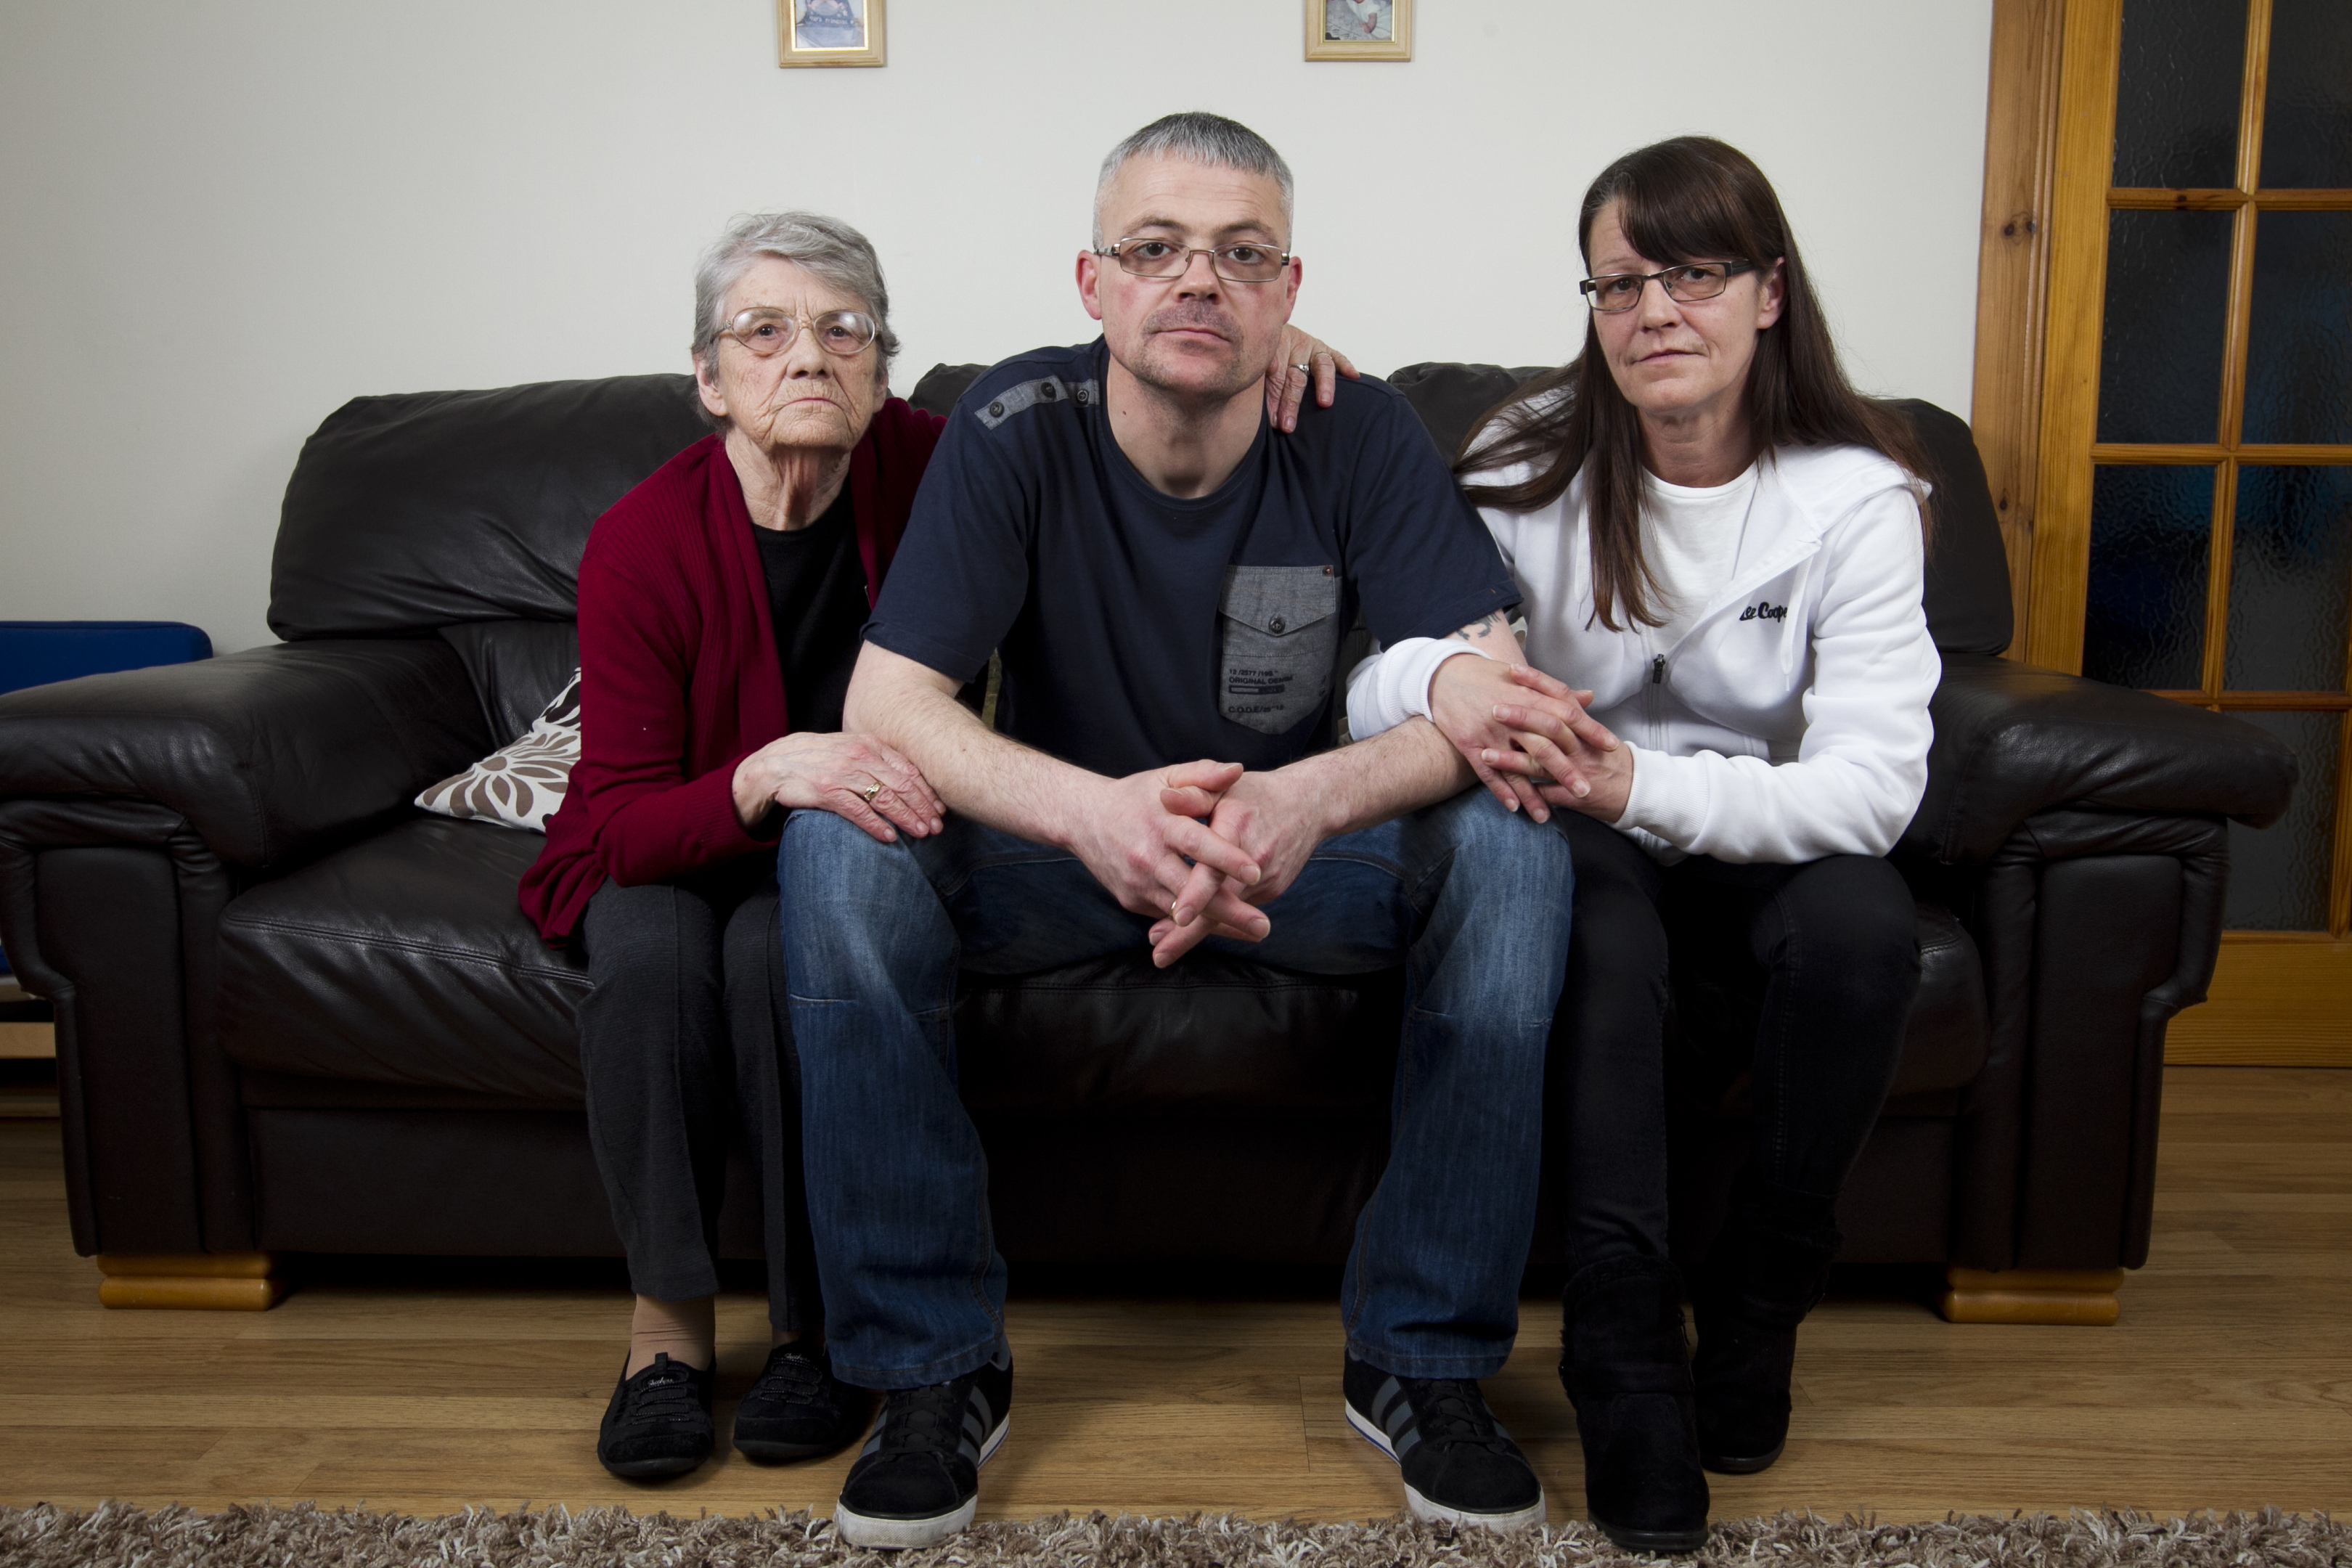 Gary and Janice Thomson, with son Jack, 11, and grandson Max, 6, who's father also works at Pinneys (Andrew Cawley/DC Thomson)